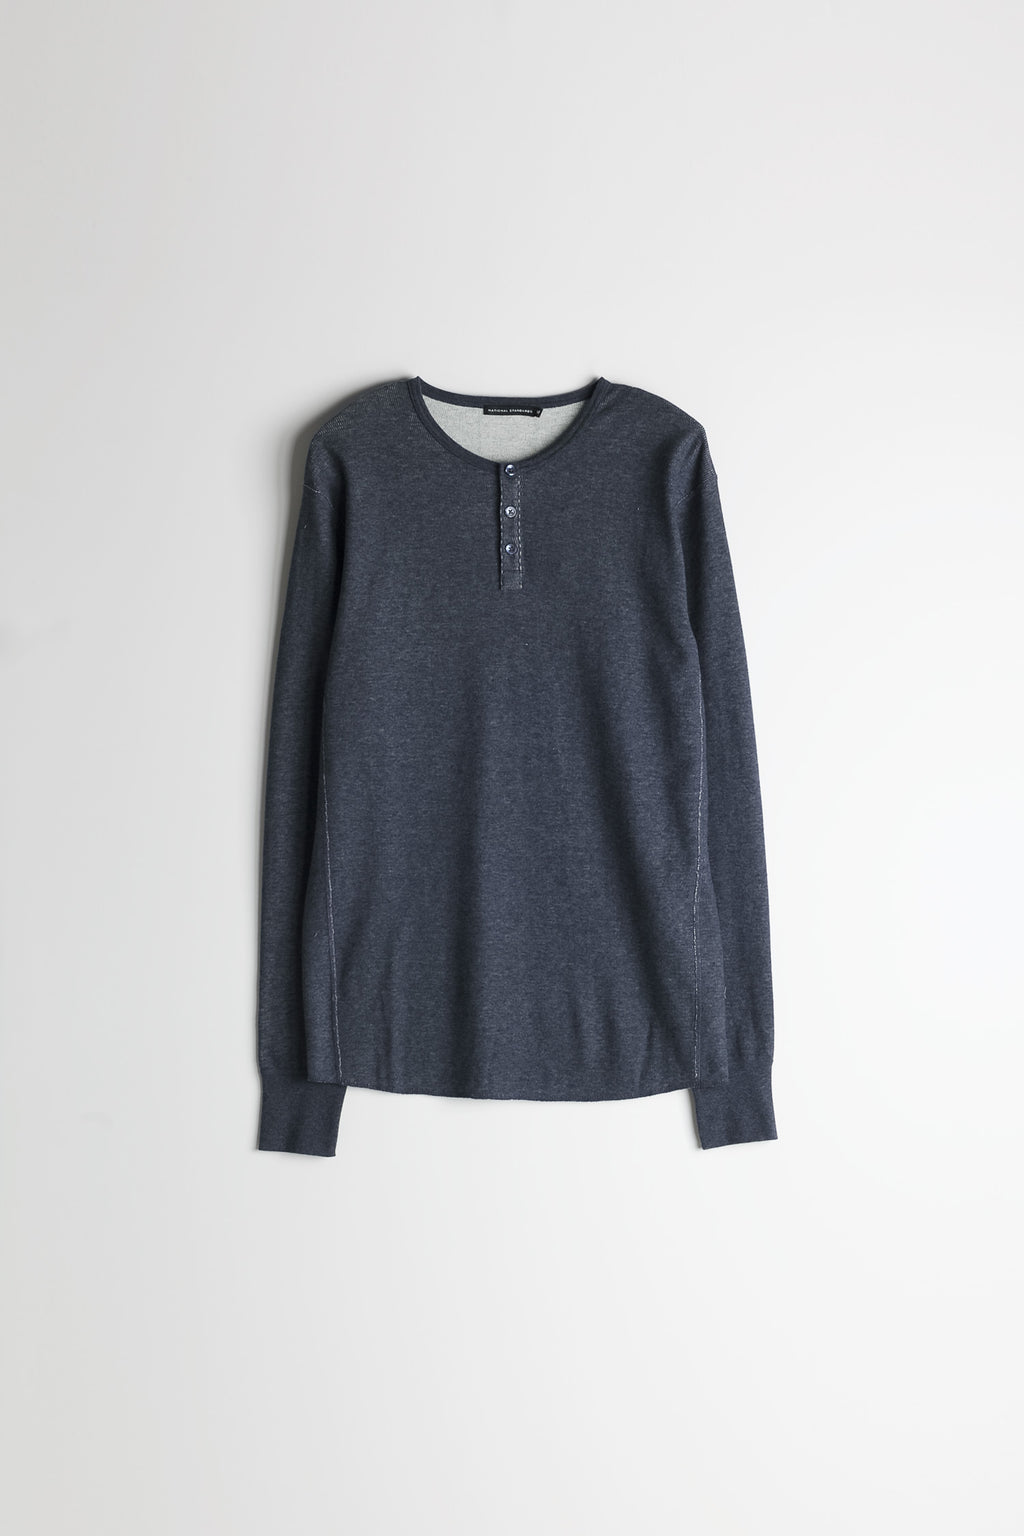 mesh thermal henley in navy 01